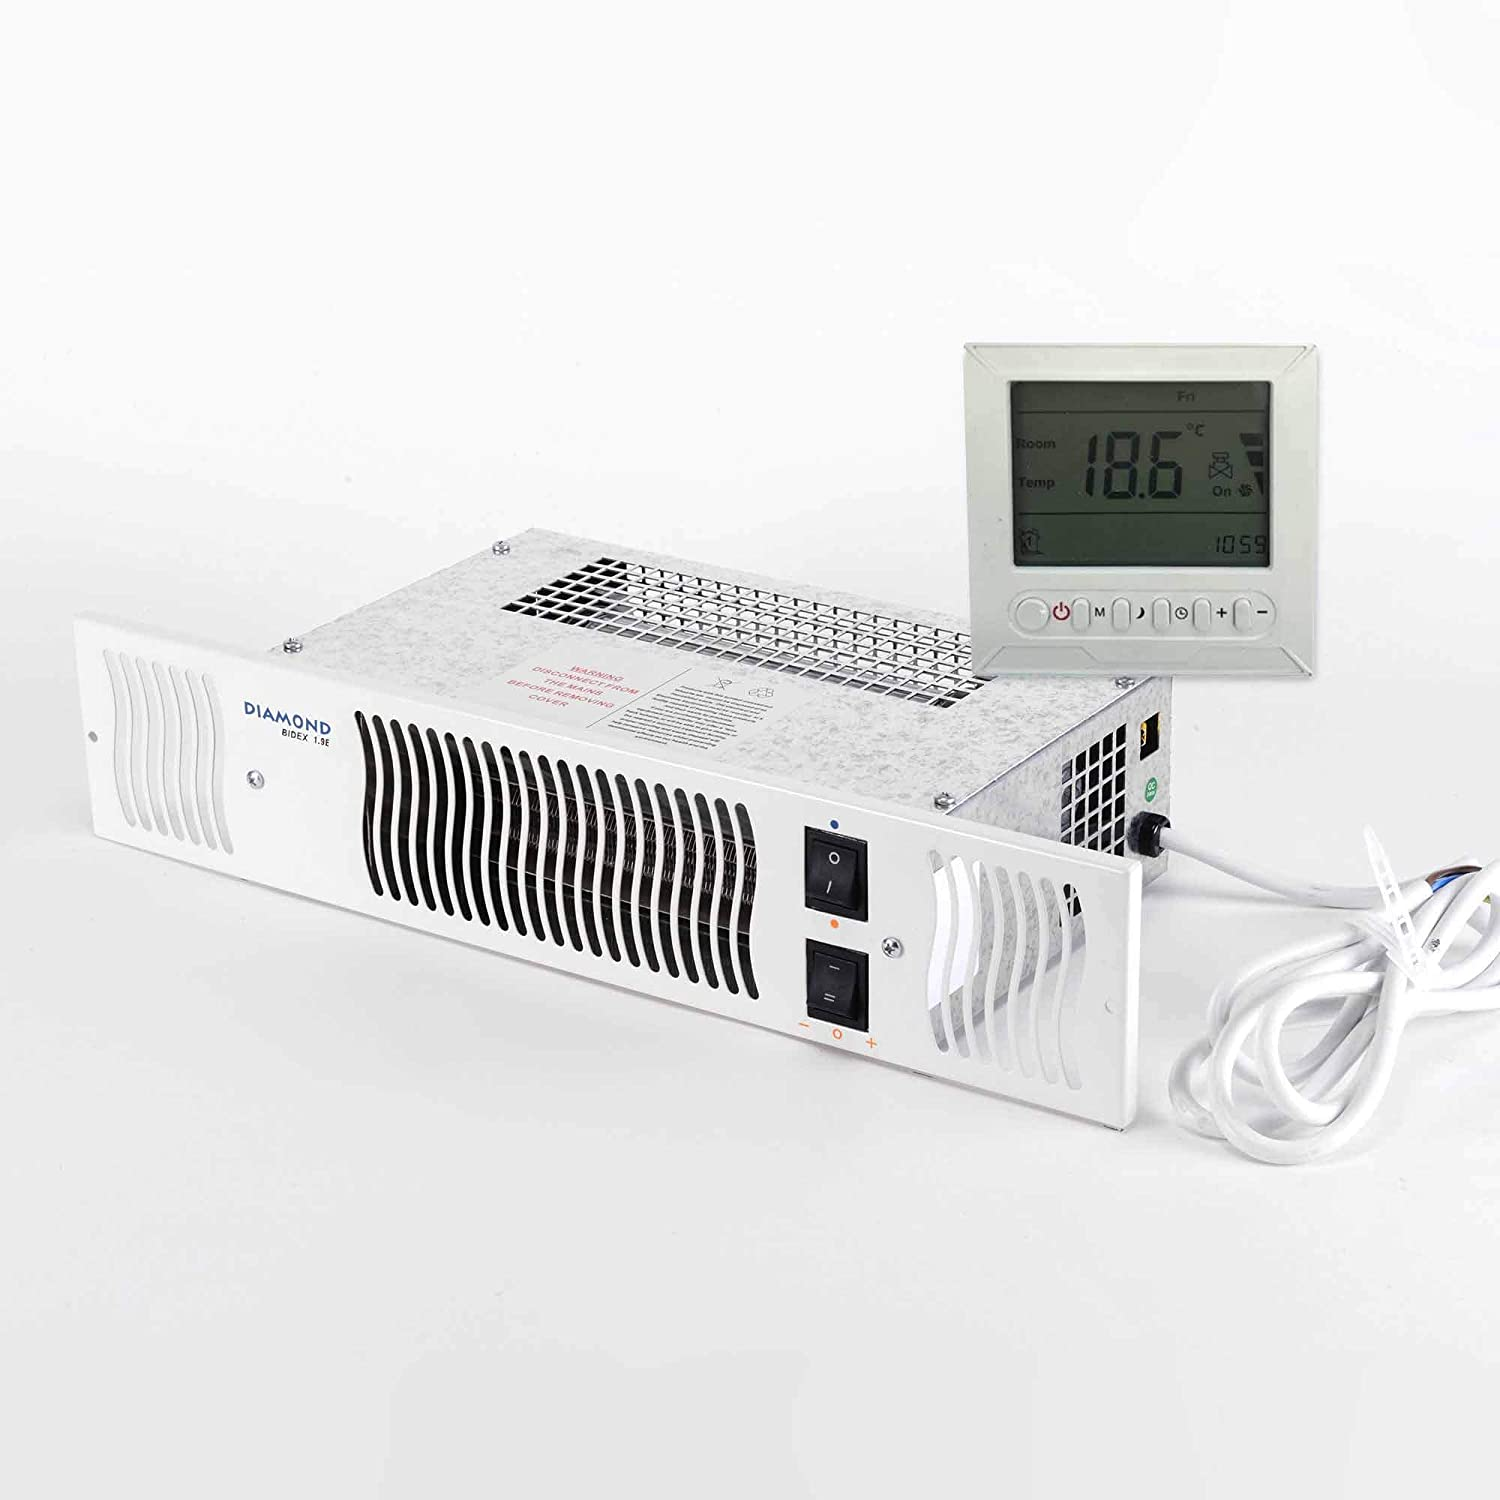 Diamond 1.9kw Electric Kitchen Plinth Heater with Room Thermostat & Timer - White Grill